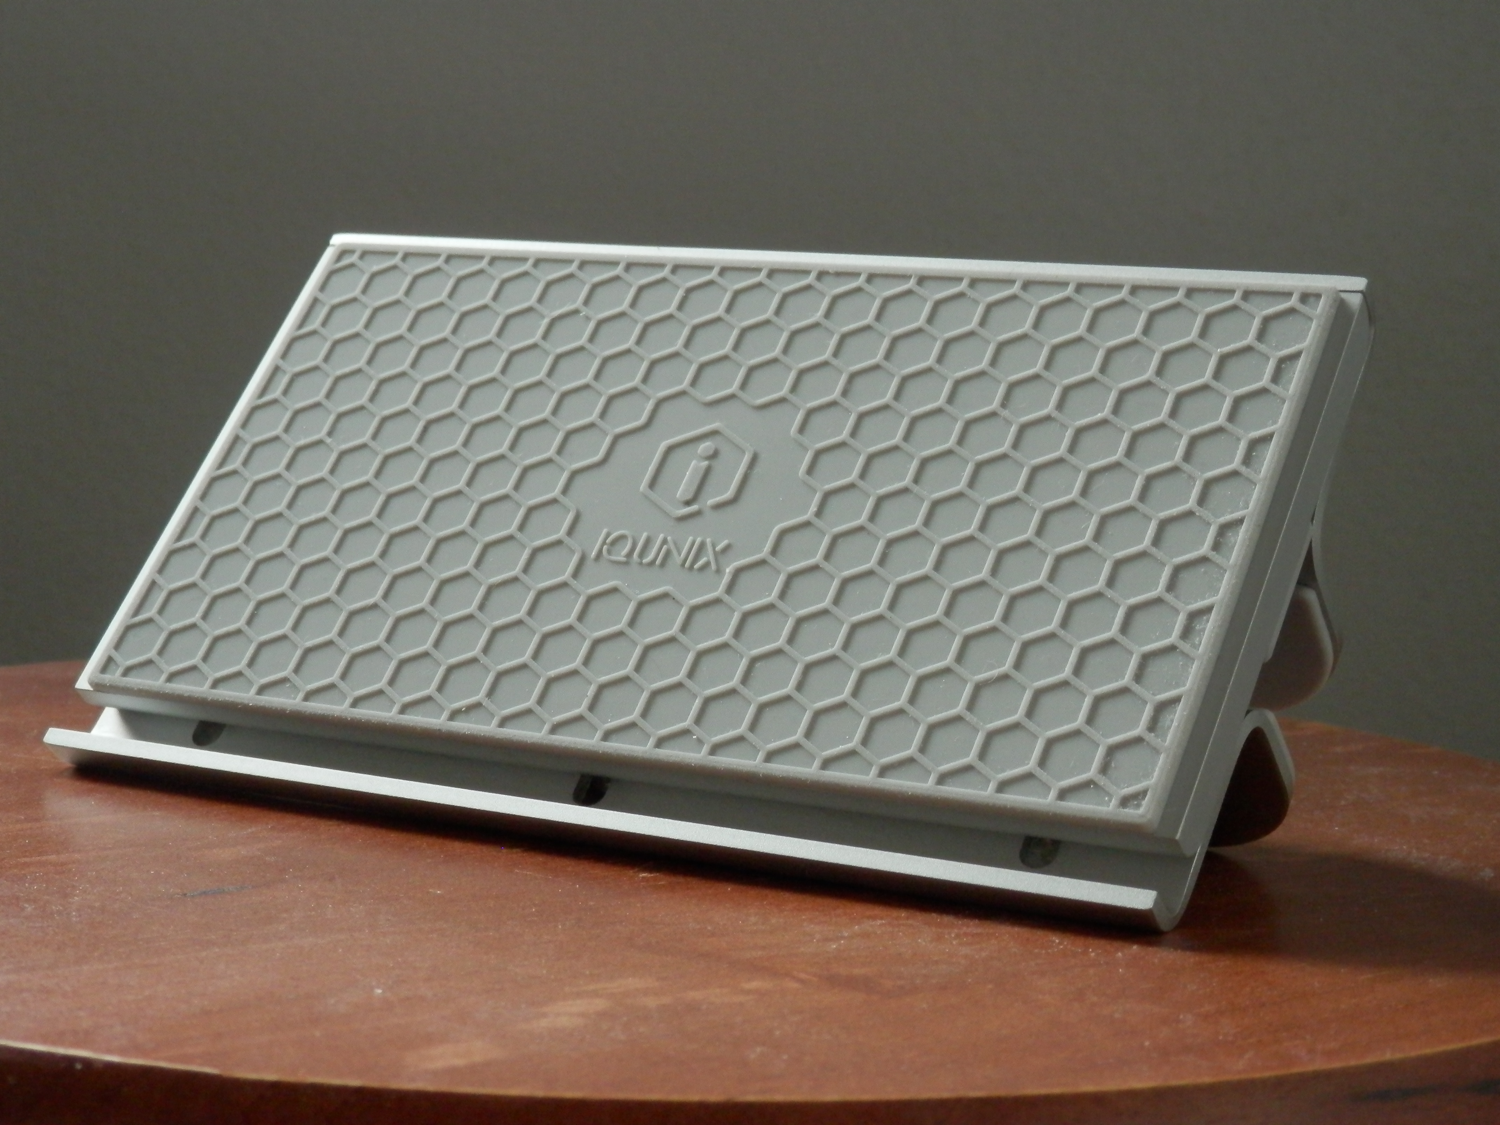 iQunix MacBook Stand Review grips bottom